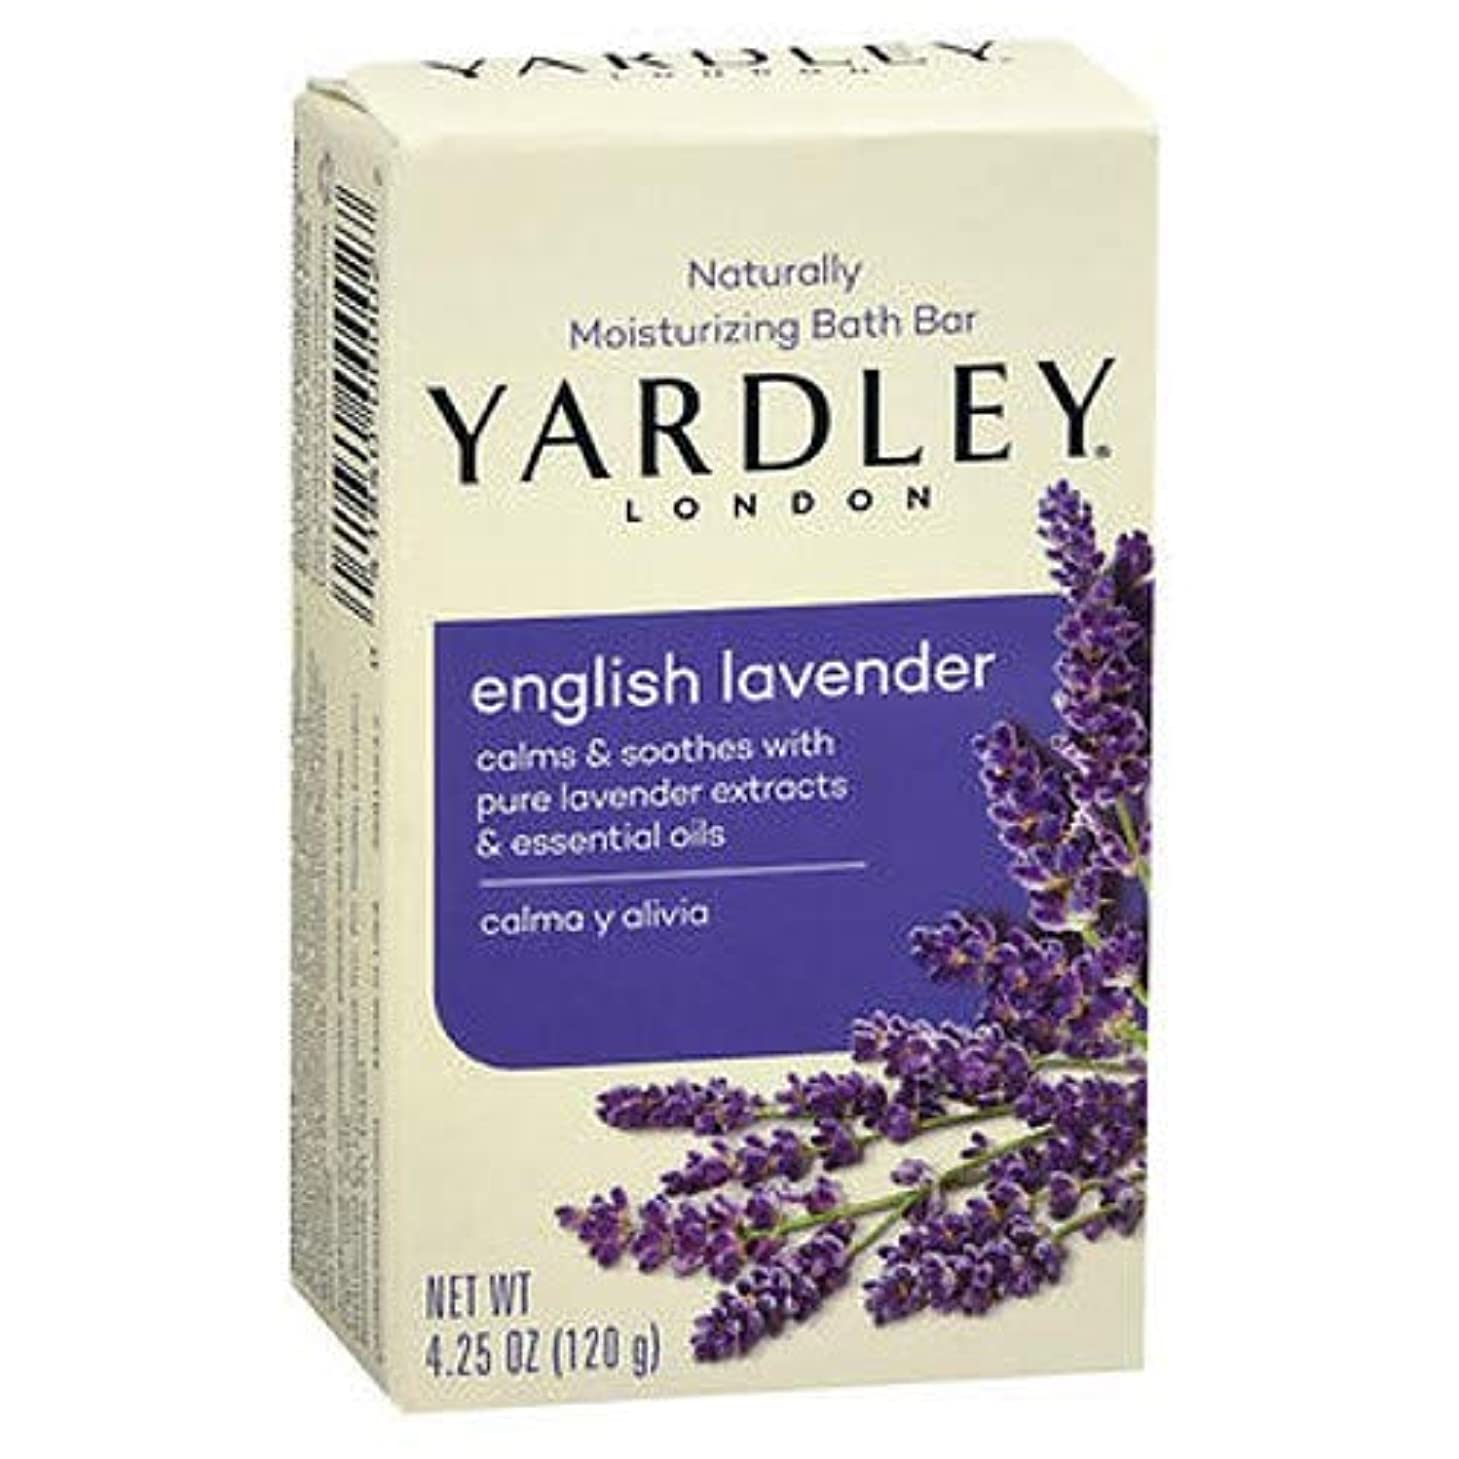 ロックライラック伴う海外直送品Yardley Yardley London Naturally Moisturizing Bar Soap, English Lavender 4.25 oz (Pack of 4)